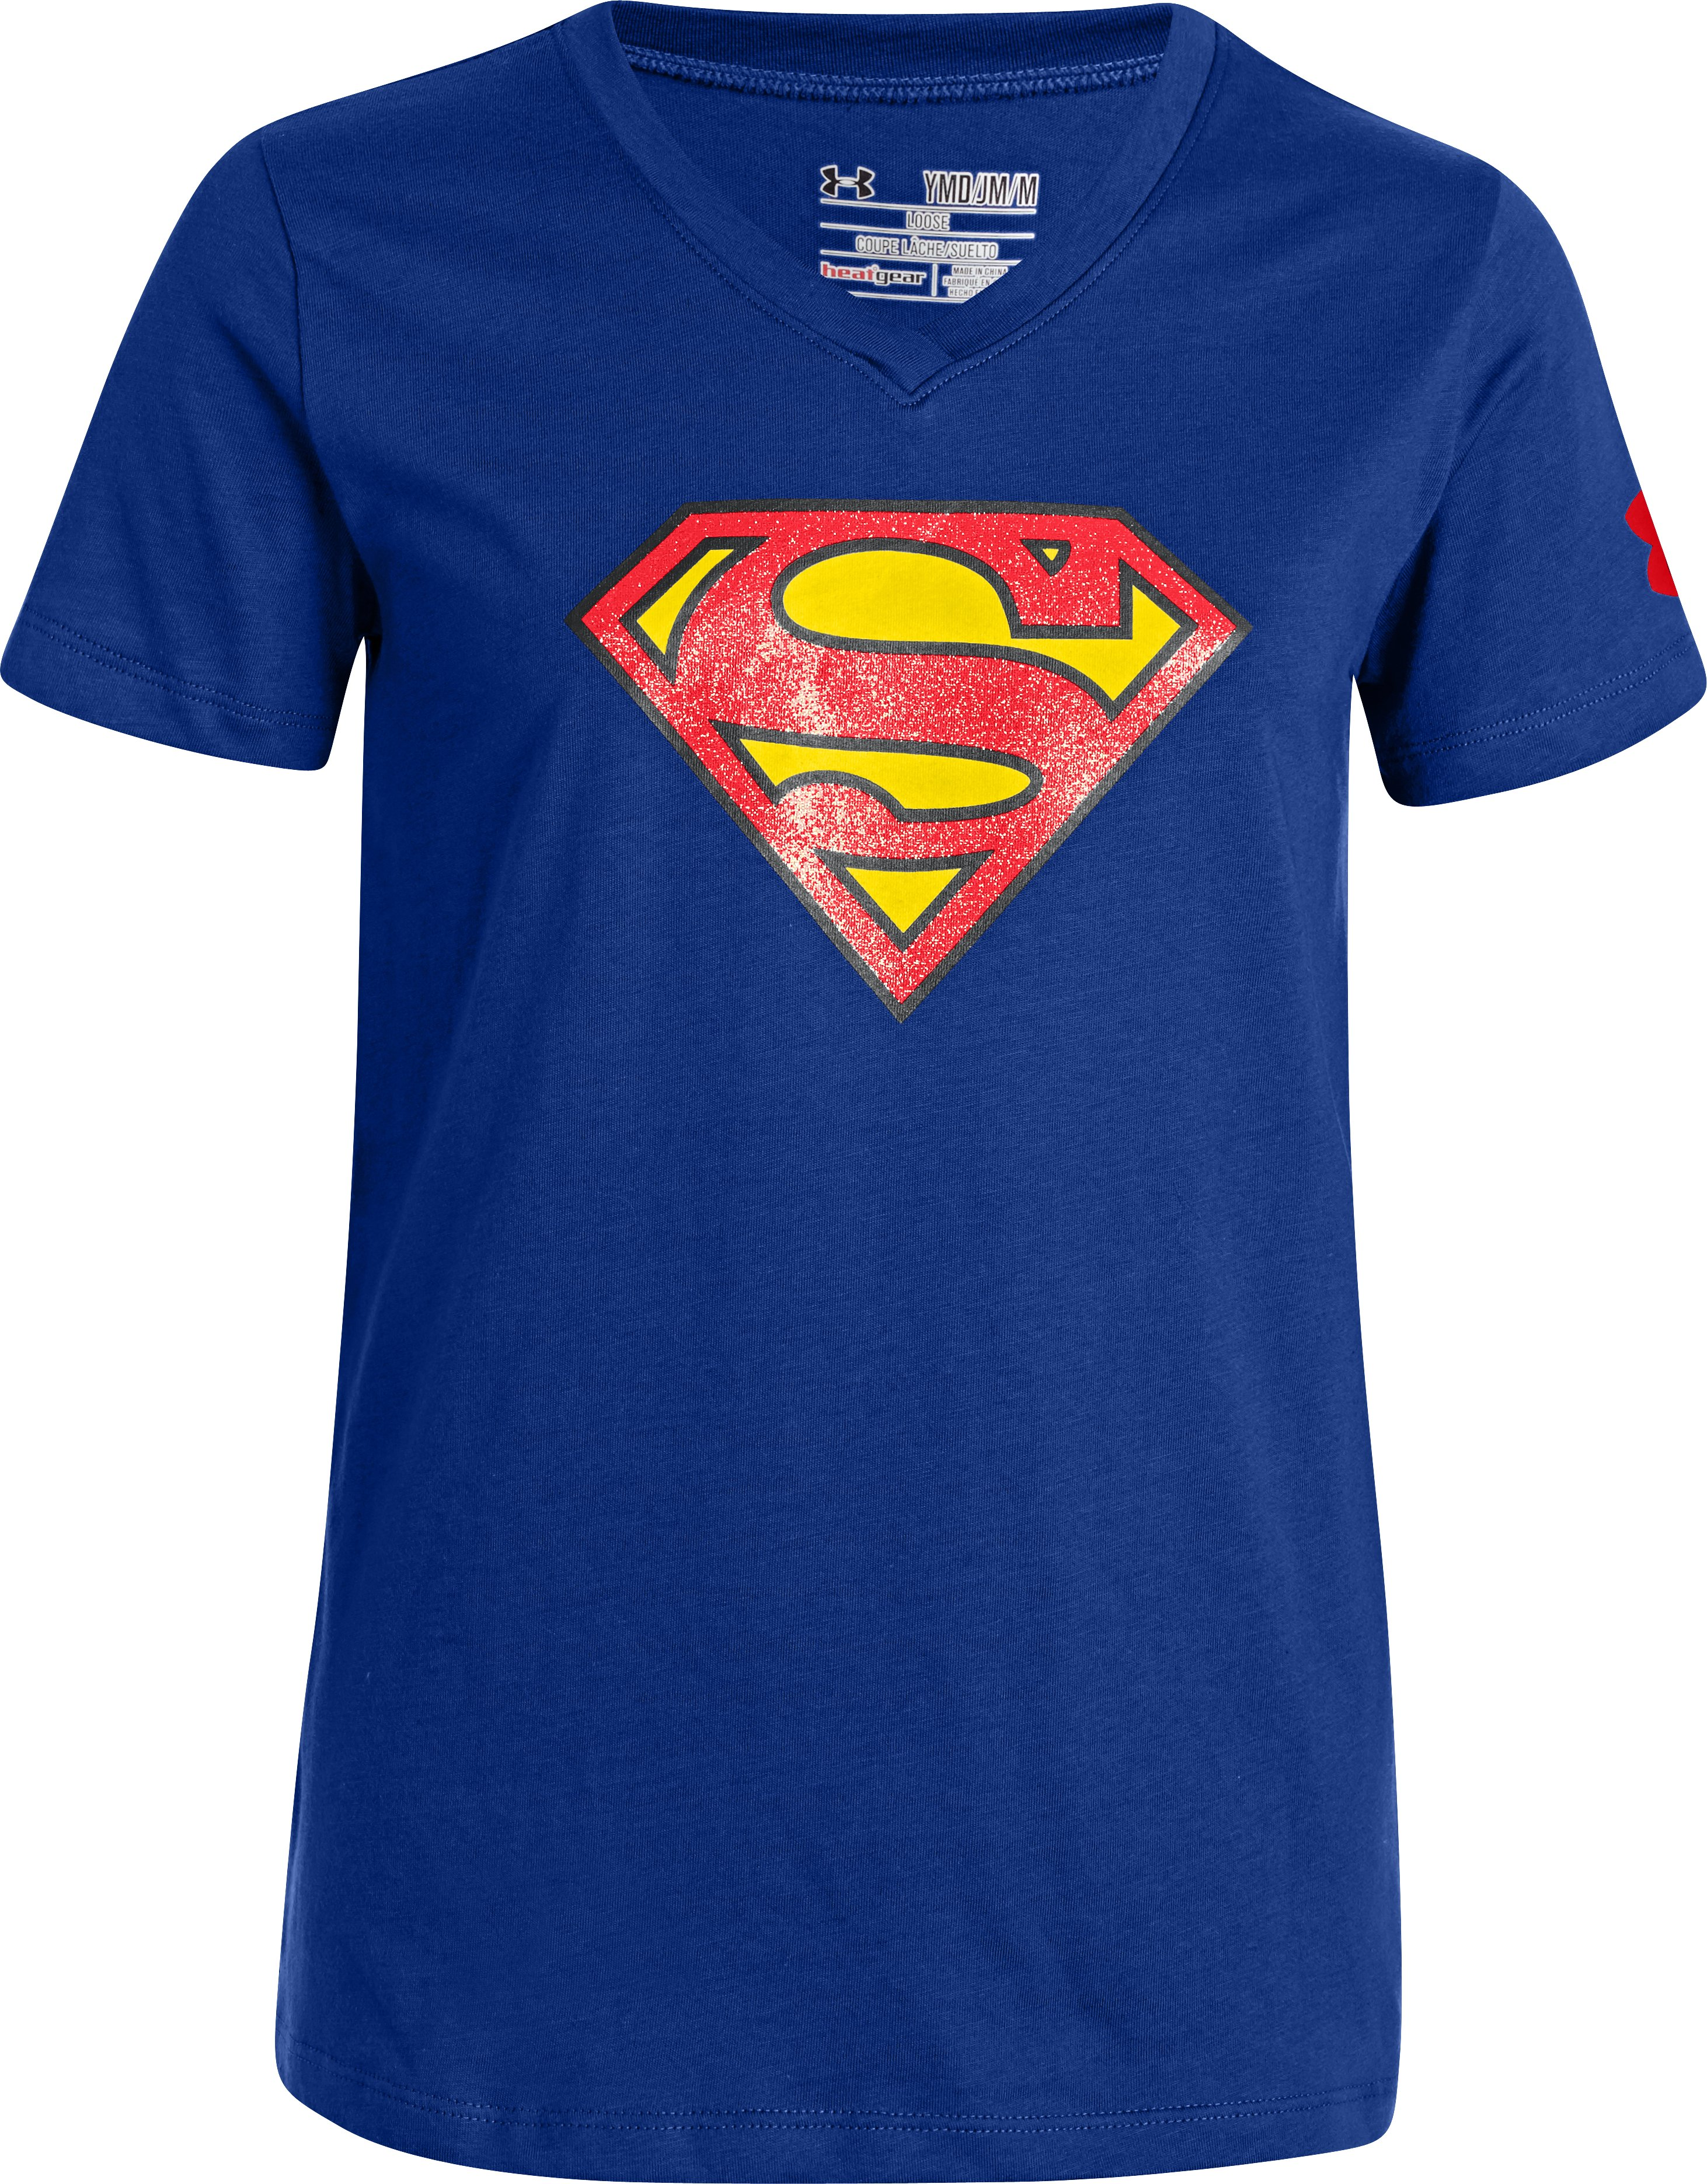 Girls' UA Supergirl V-Neck, Royal